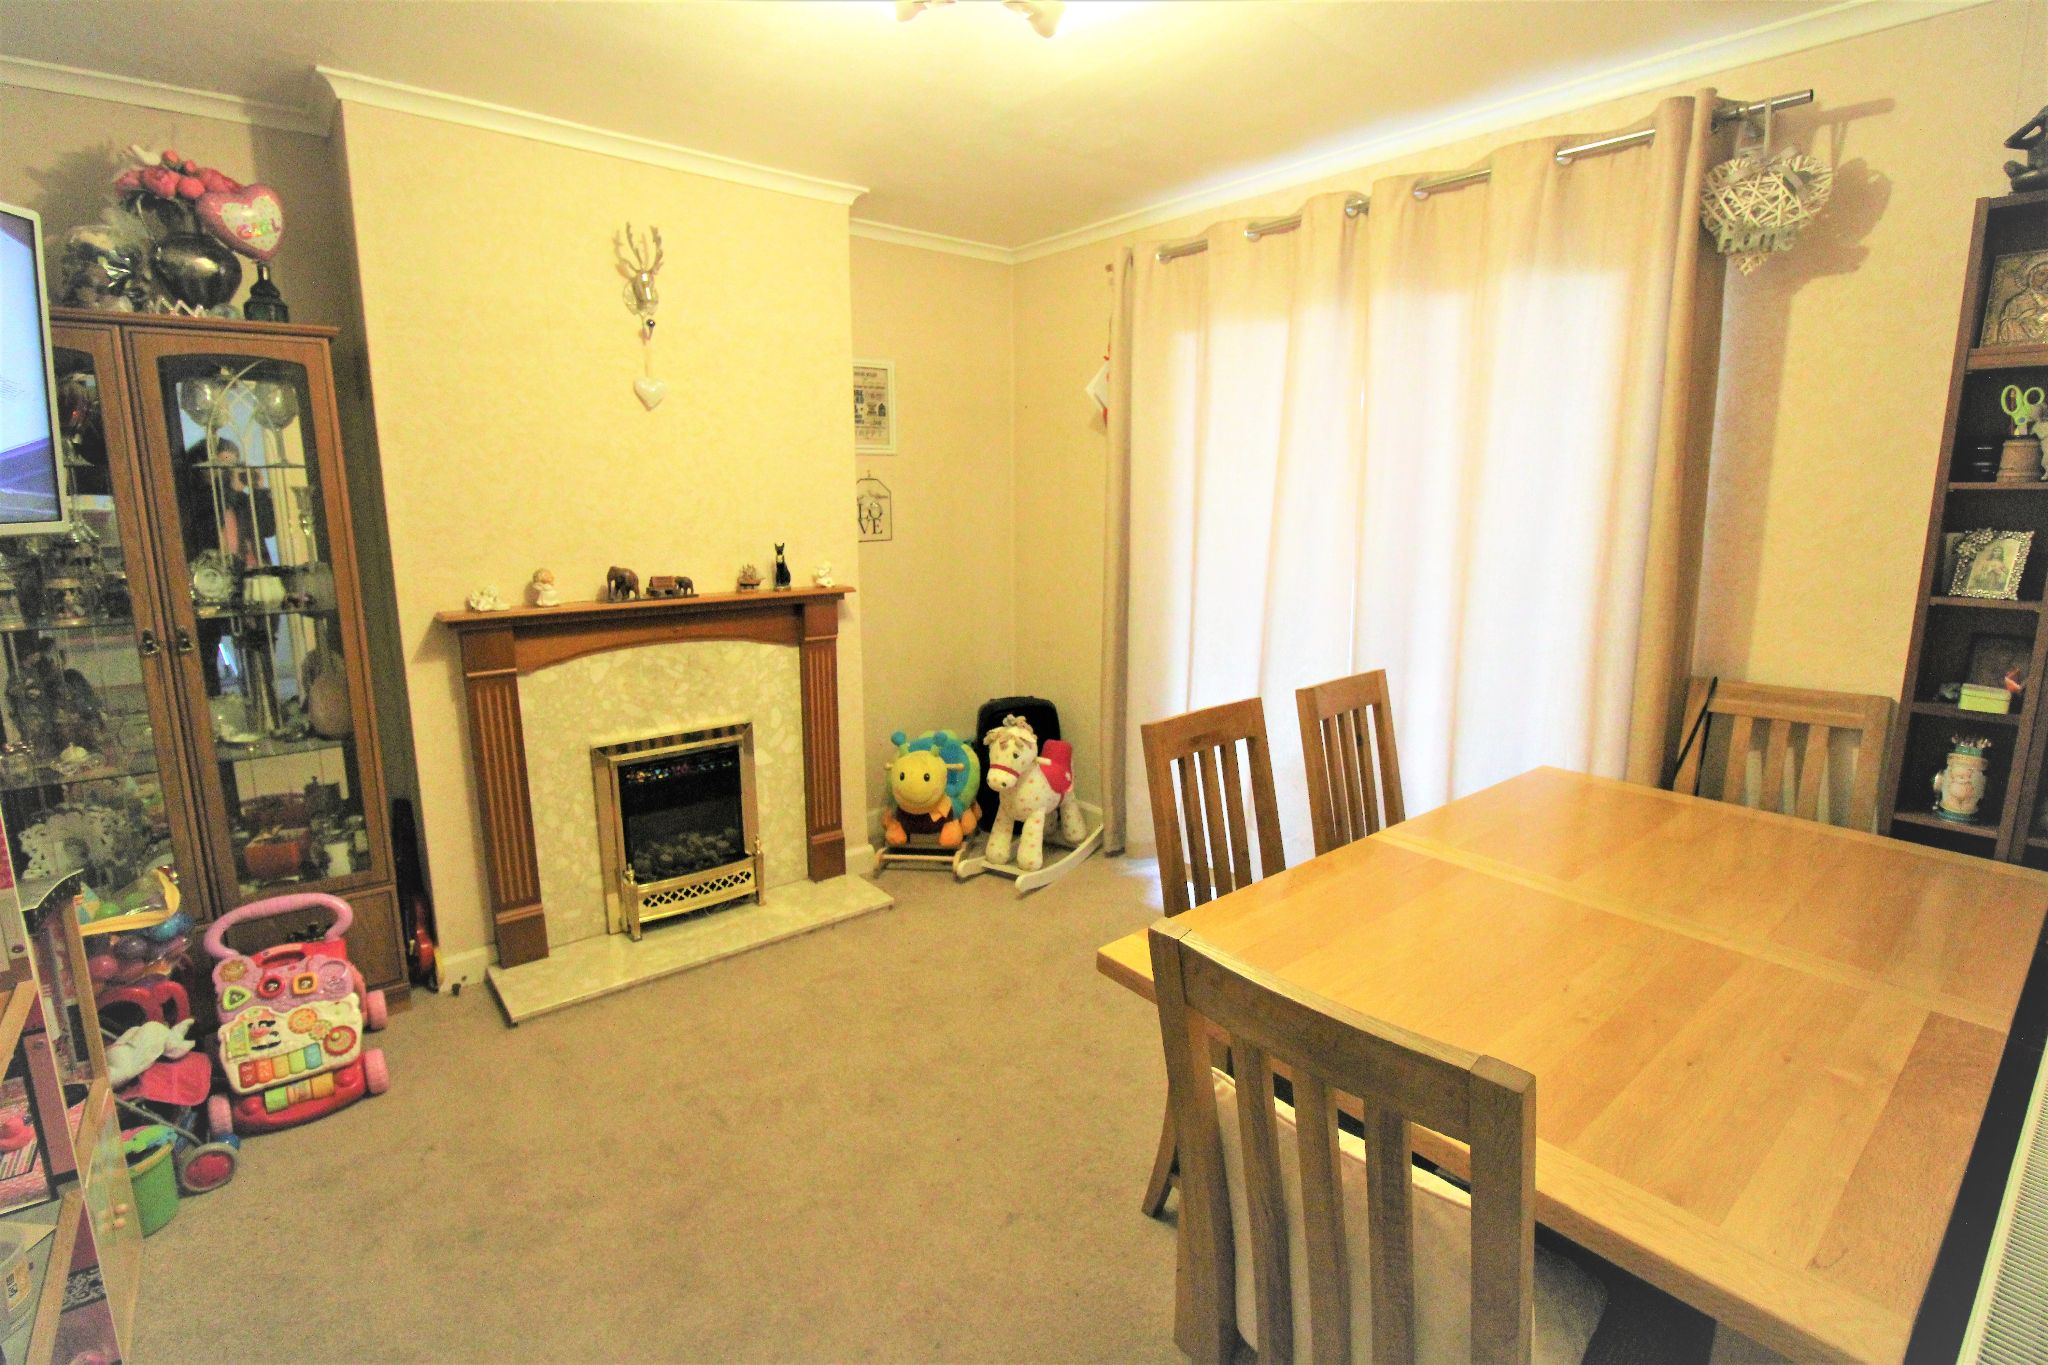 3 Bedroom Semi-detached House For Sale - Reception 2 / Dining room